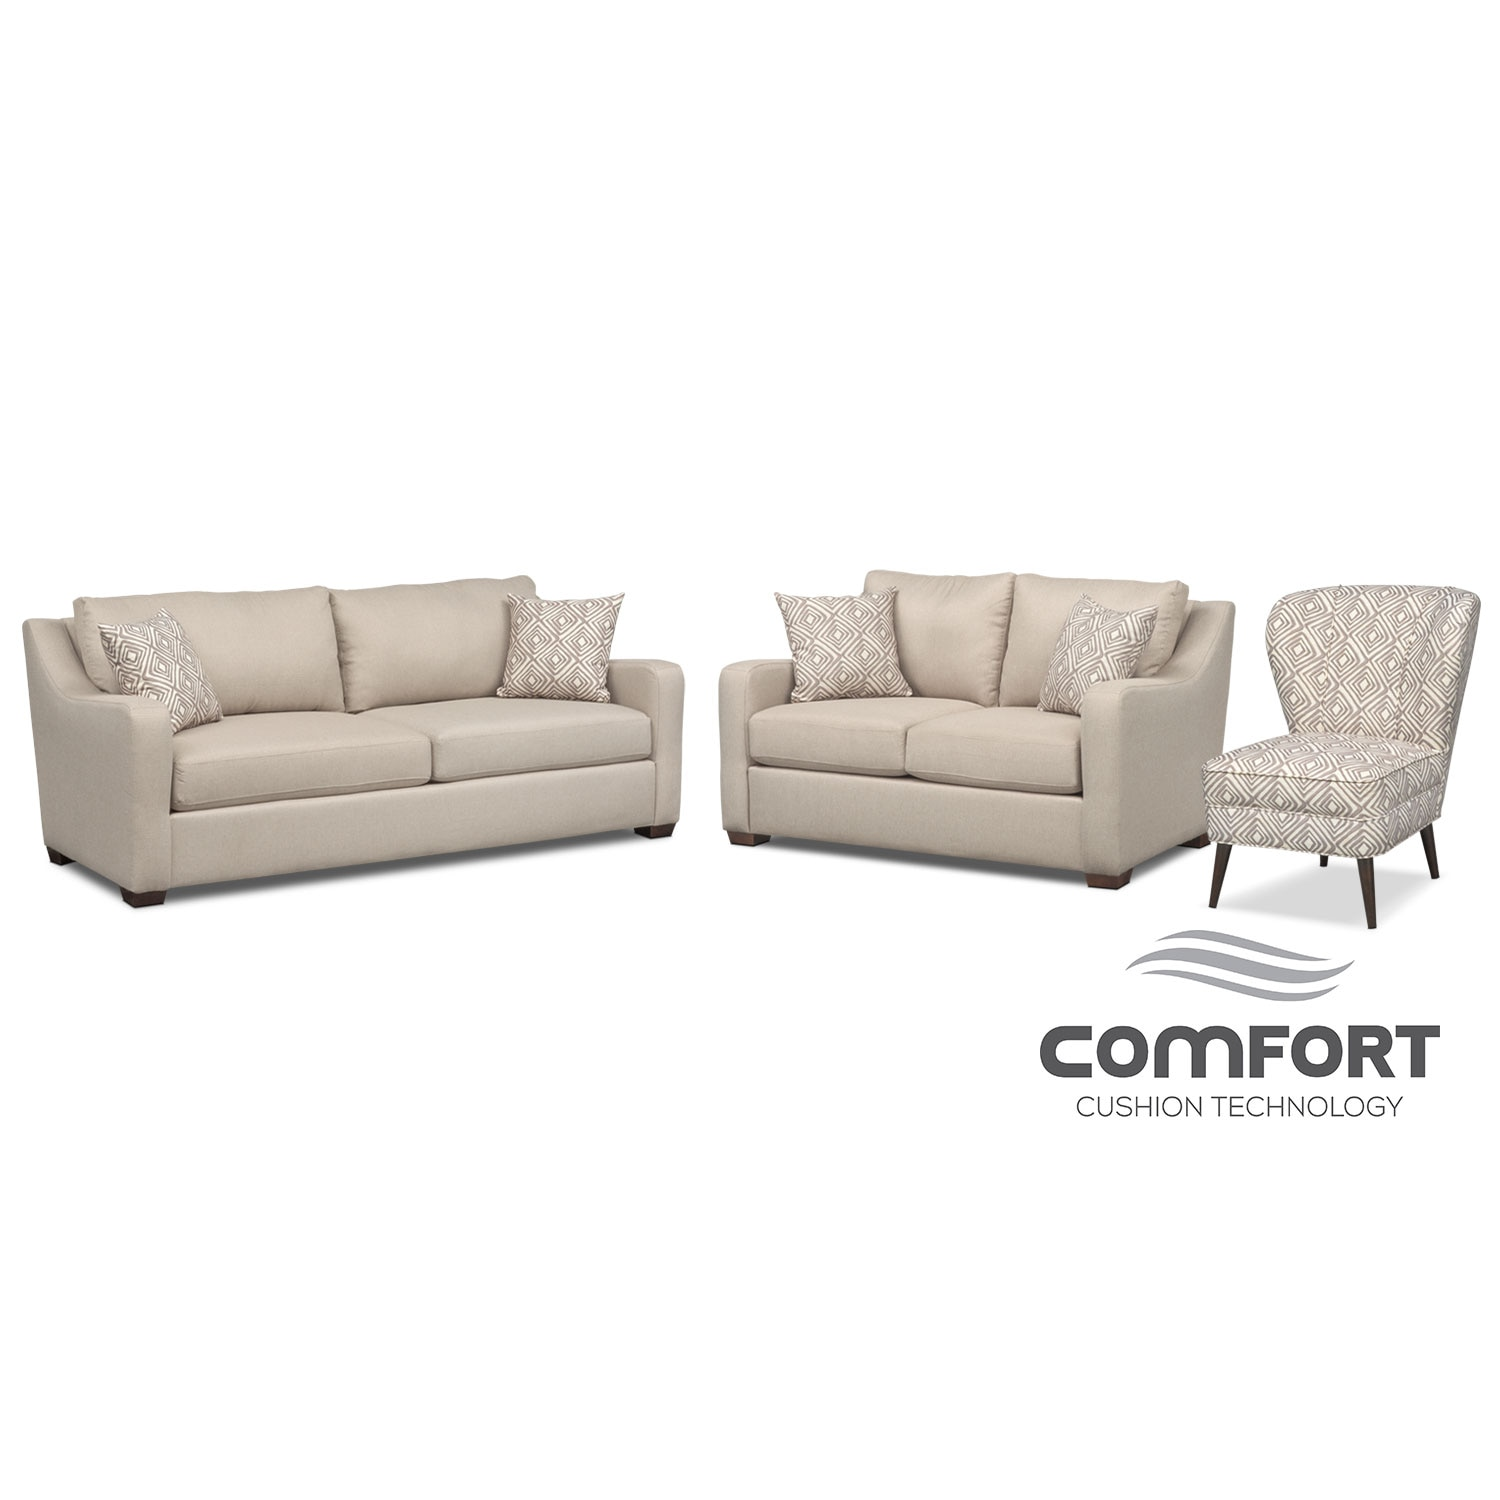 Living Room Furniture - Jules Comfort Sofa, Loveseat and Accent Chair Set - Cream